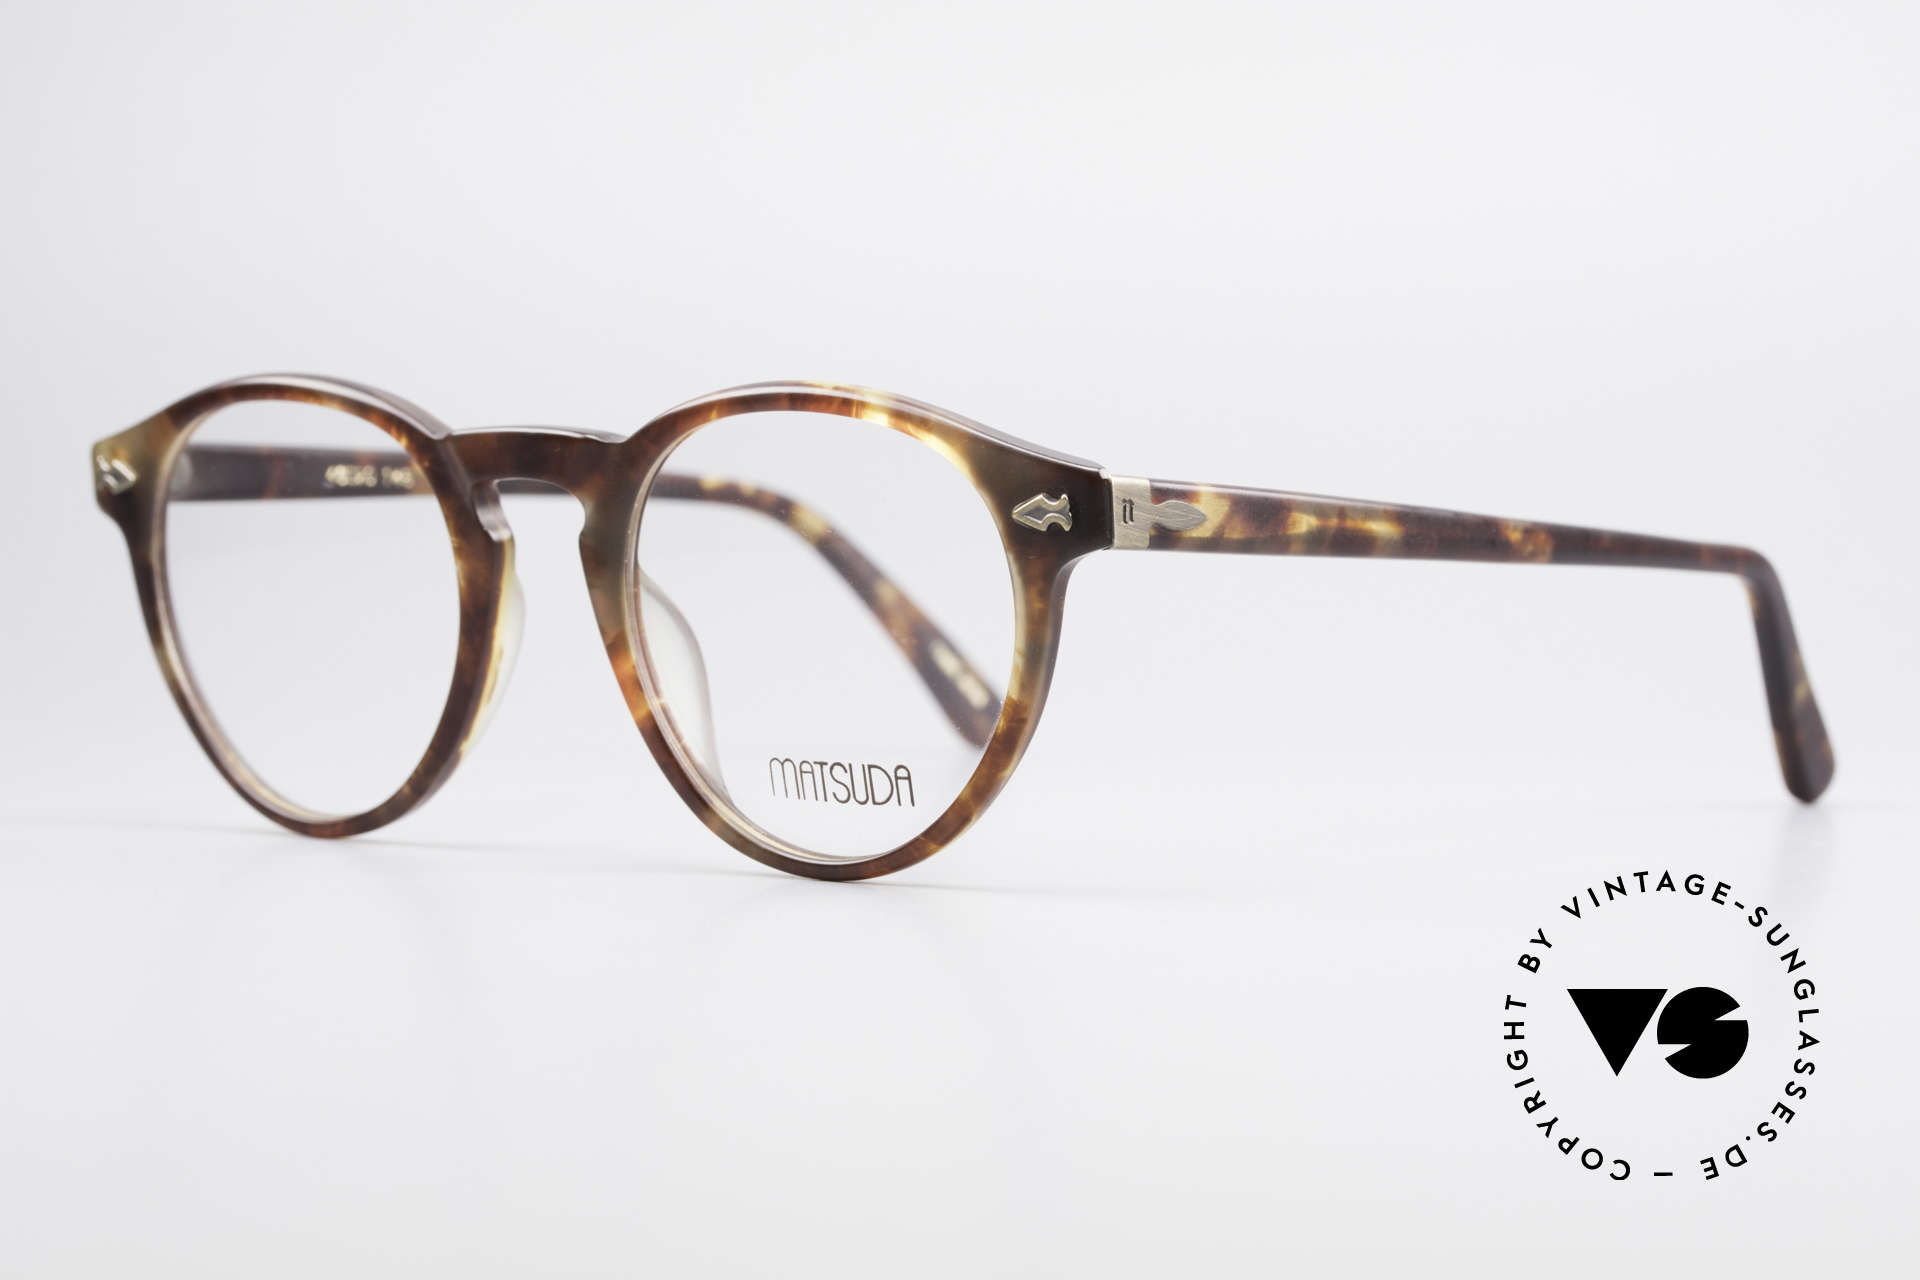 Matsuda 2303 Panto Vintage Eyeglasses, a true classic in coloring and design, medium size 46-20, Made for Men and Women